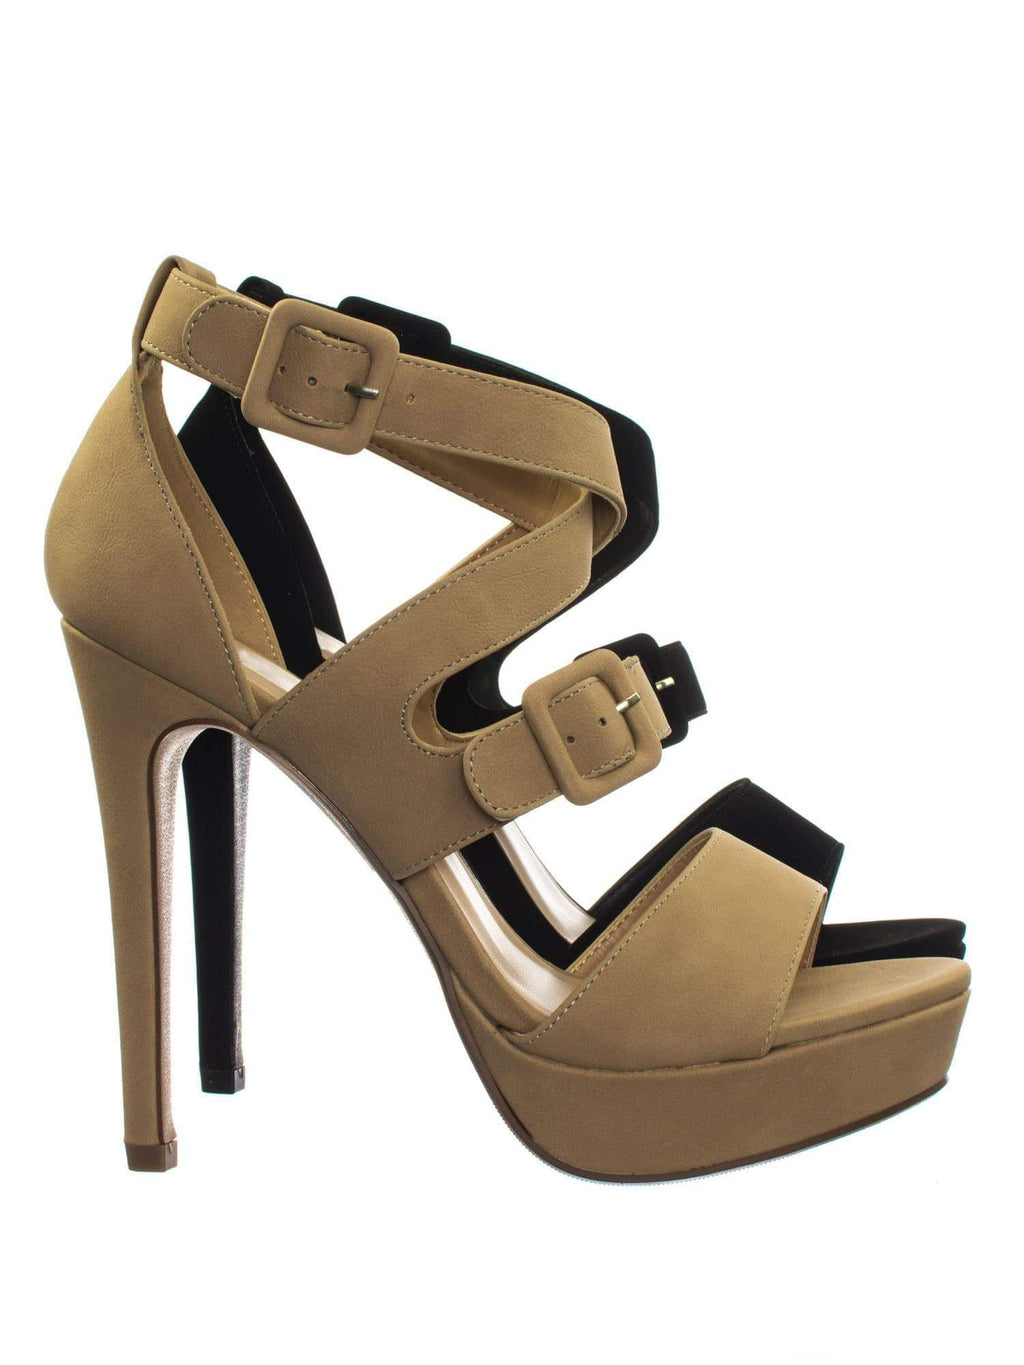 Blinky Natural High Heel Platform Open Toe Cage Dress Sandal w Double Buckles